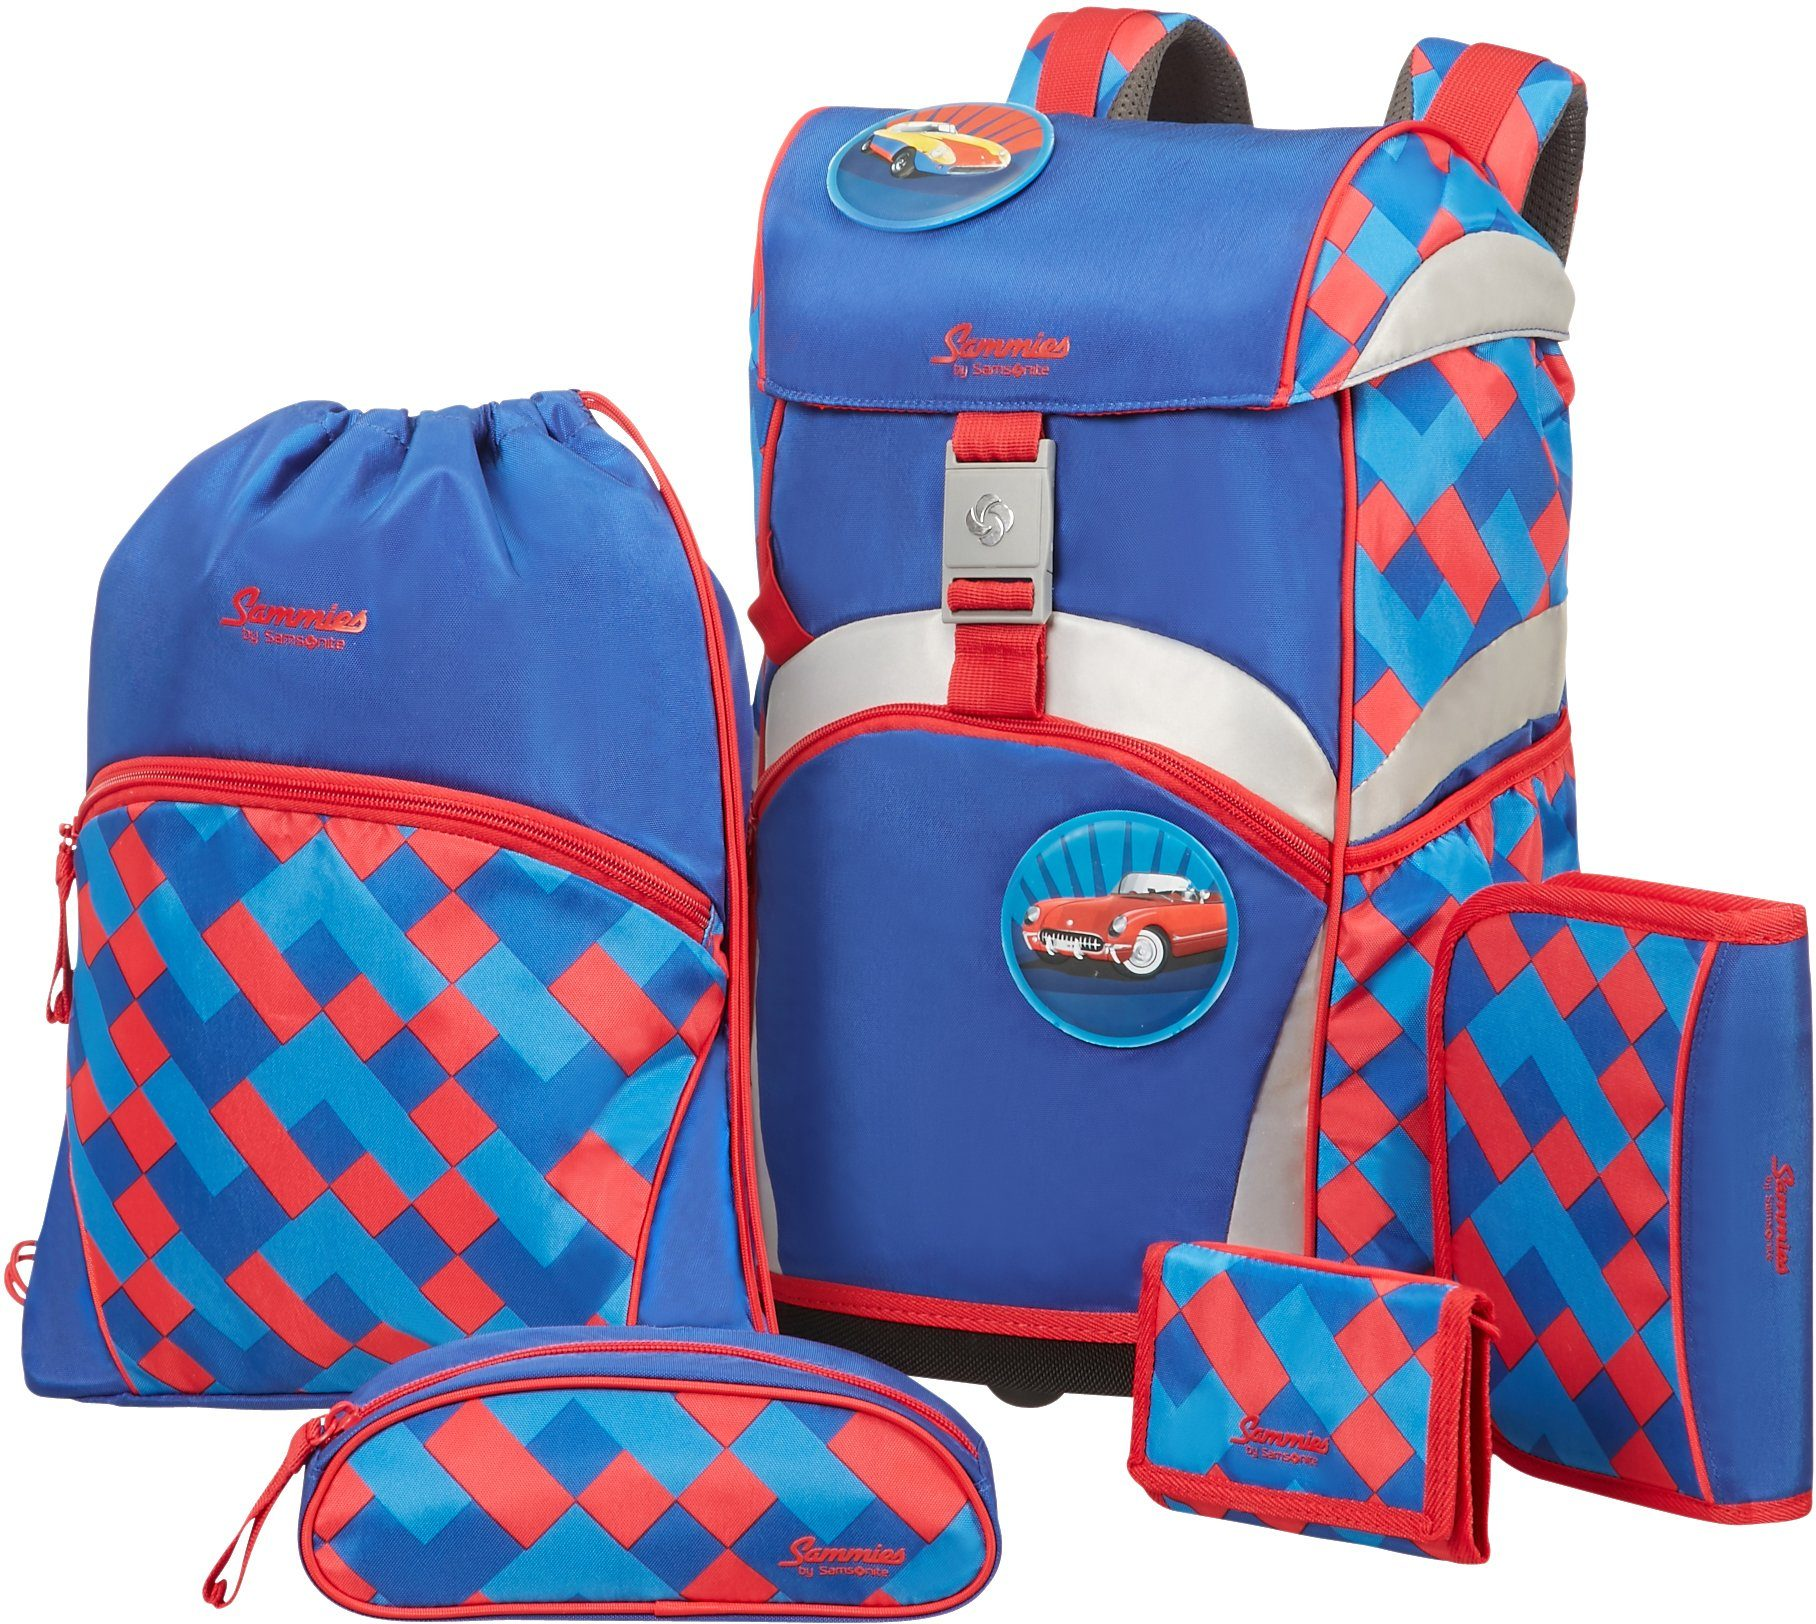 Samsonite Schulranzen Set, »Sammies by Samsonite Funky Blue« (5tlg.)